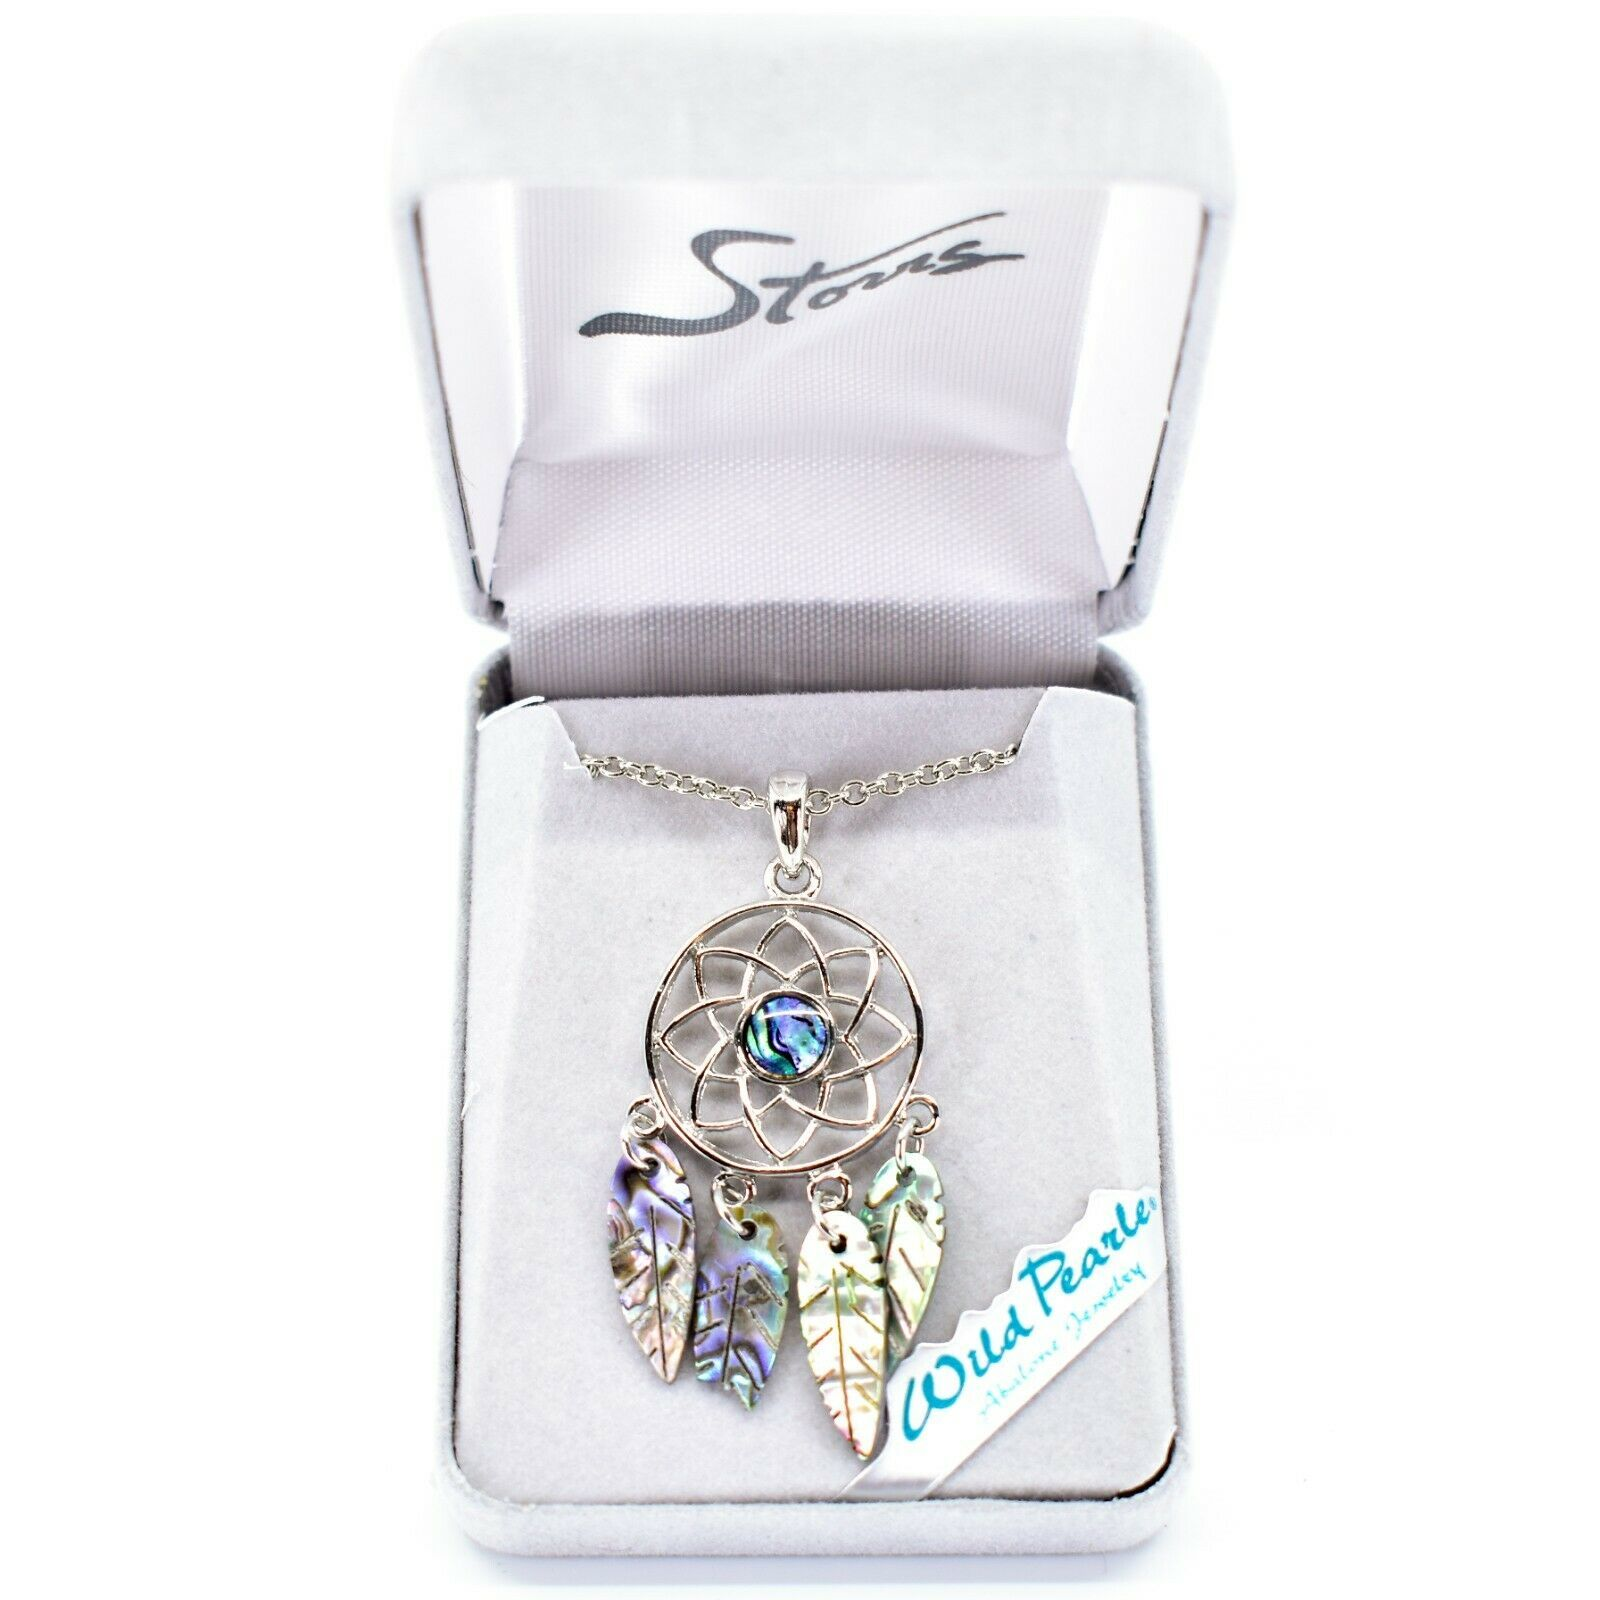 Storrs Wild Pearle Abalone Shell Dreamcatcher Pendant w Silver Tone Necklace